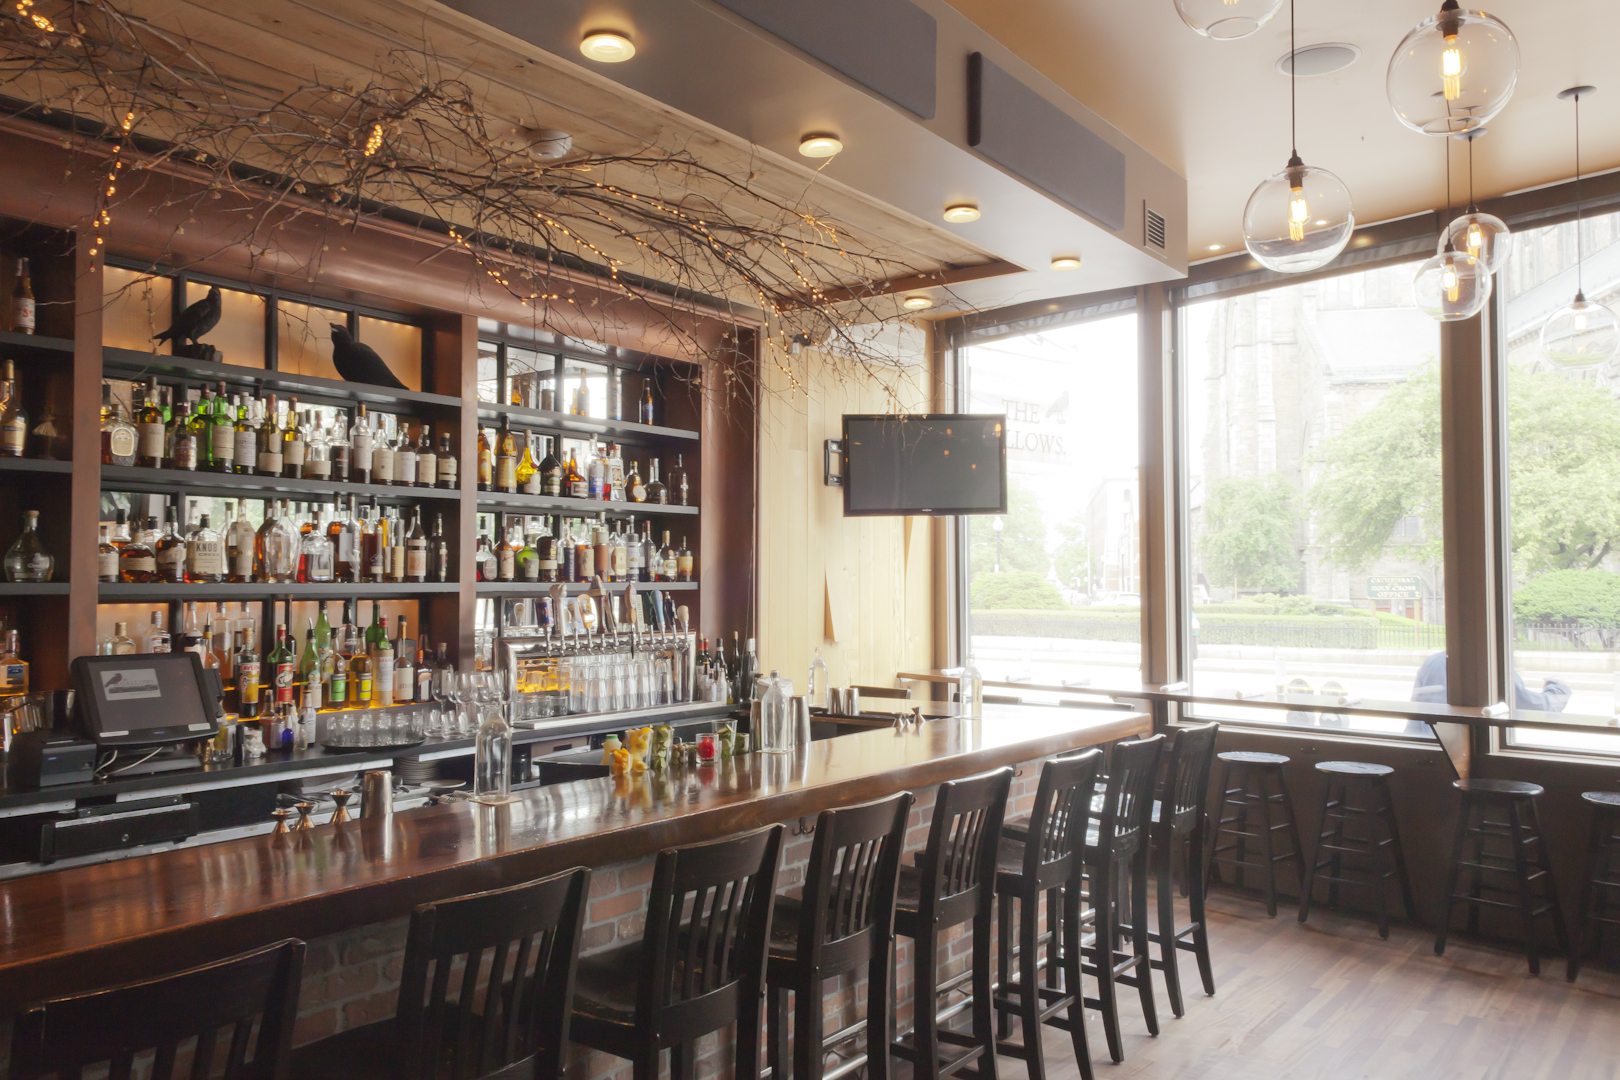 Wooden bar stools line a bar with overhanging branches and a rear wall stocked with liquor bottles